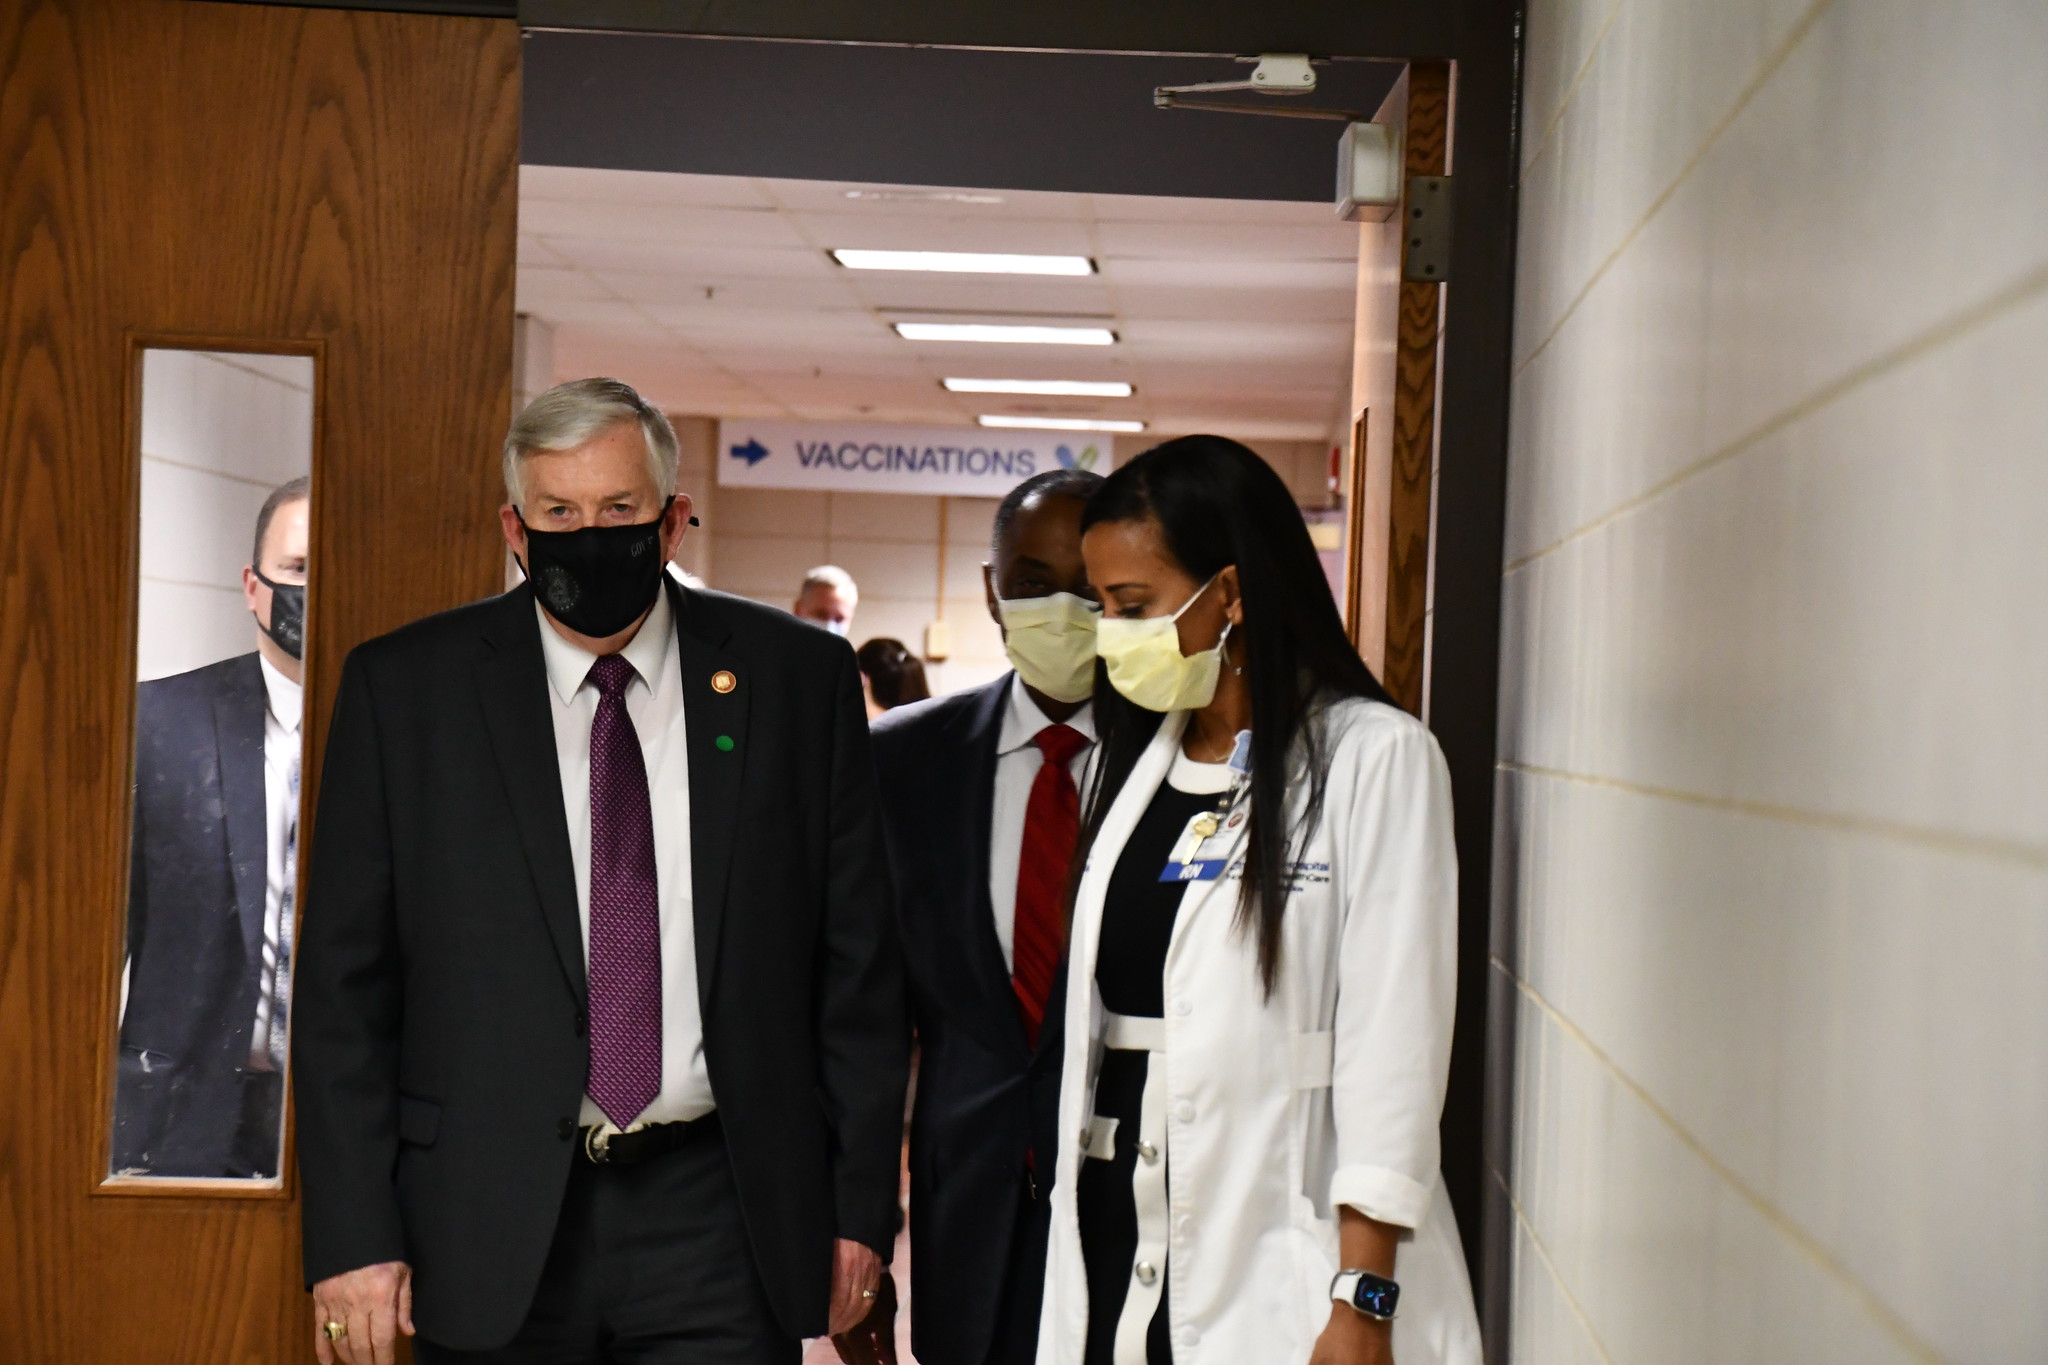 Gov. Mike Parson visits a vaccination clinic hosted by BJC HealthCare at Christian Hospital Northeast on Thursday, March 4, 2021